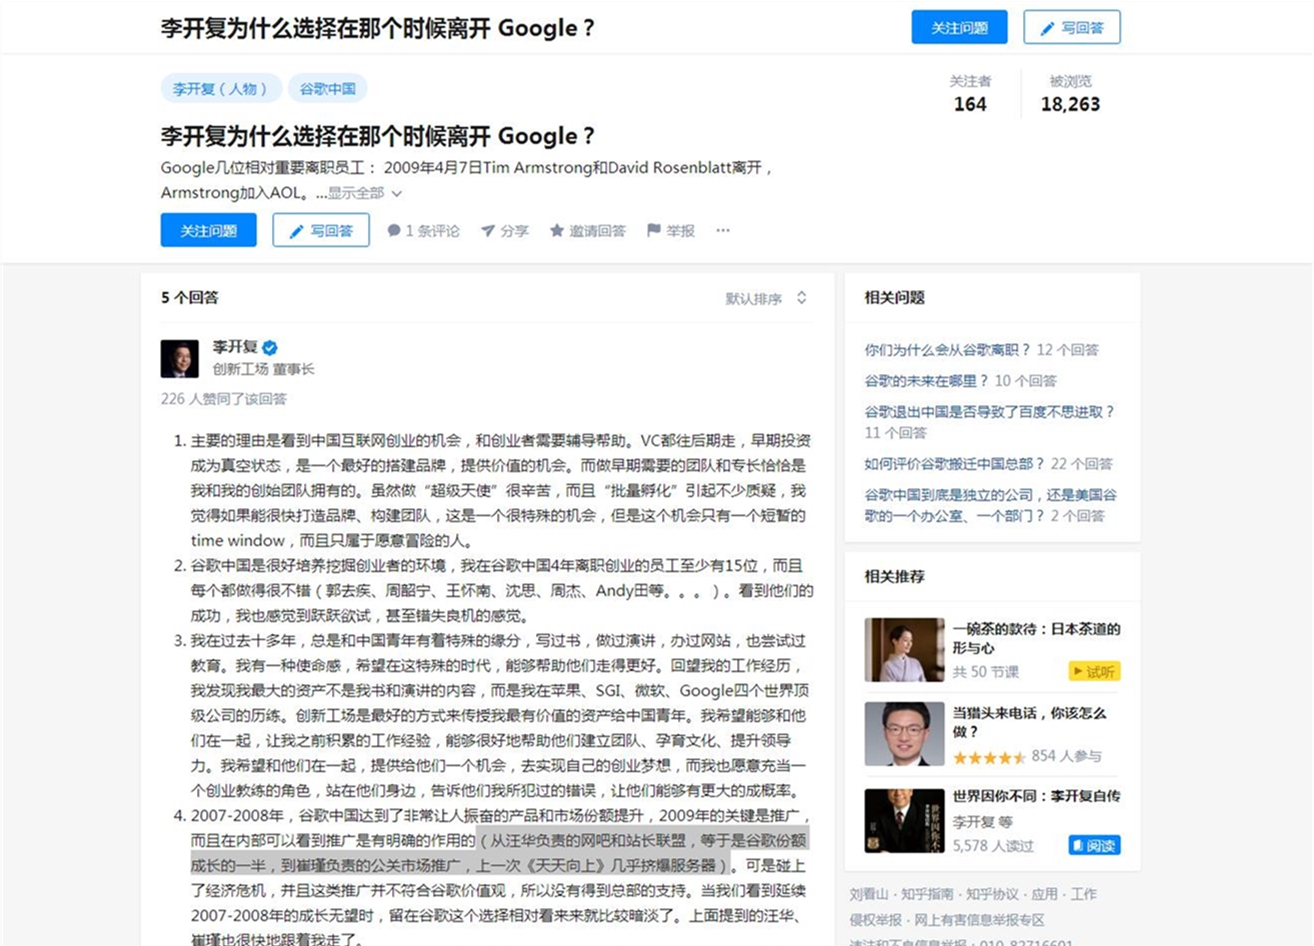 a analysis of google quit chinese market 2 Meng (2010) argues that google's scenario in china can be considered as political censorship this kind of clampdown of information is effected by the government in attempts to distort or fake political contents received by its citizens google's operation in china was confined under internet censorship.